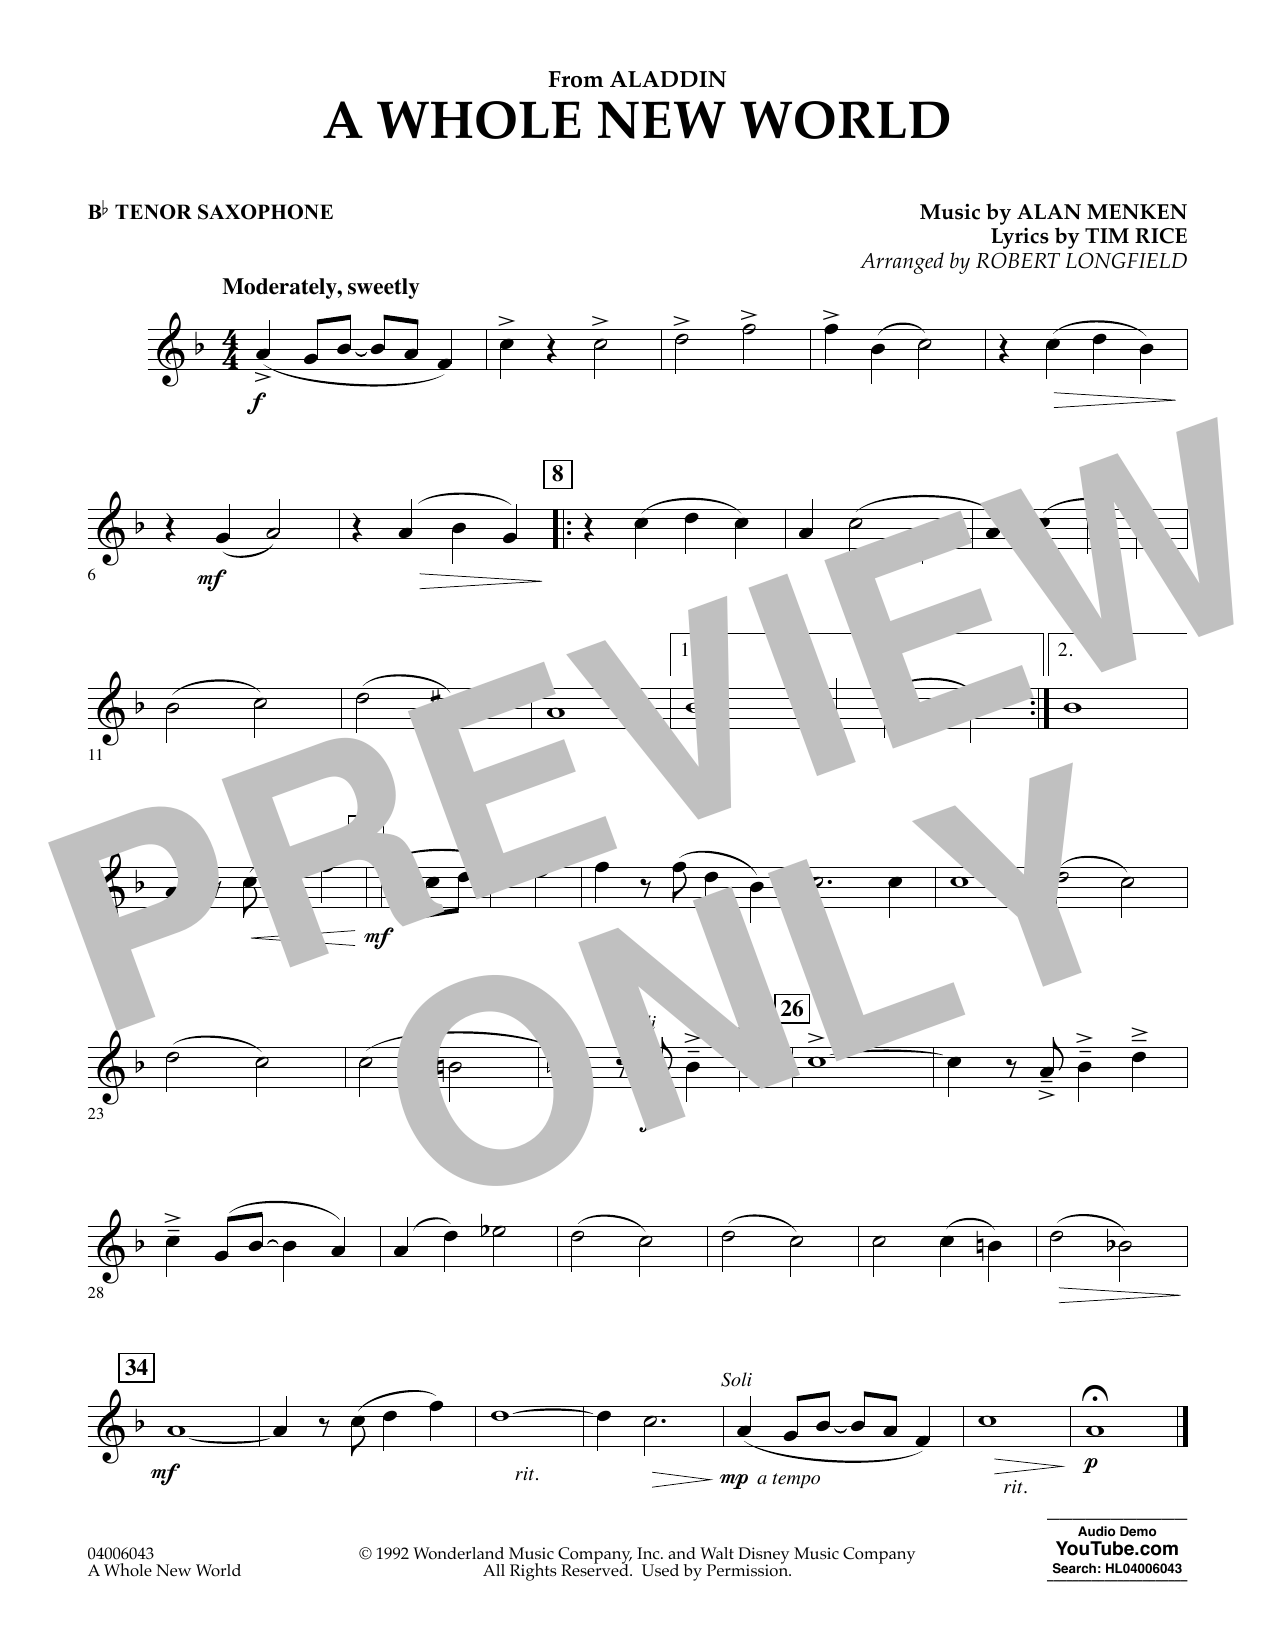 Download Alan Menken 'A Whole New World (from Aladdin) (arr. Robert Longfield) - Bb Tenor Saxophone' Digital Sheet Music Notes & Chords and start playing in minutes